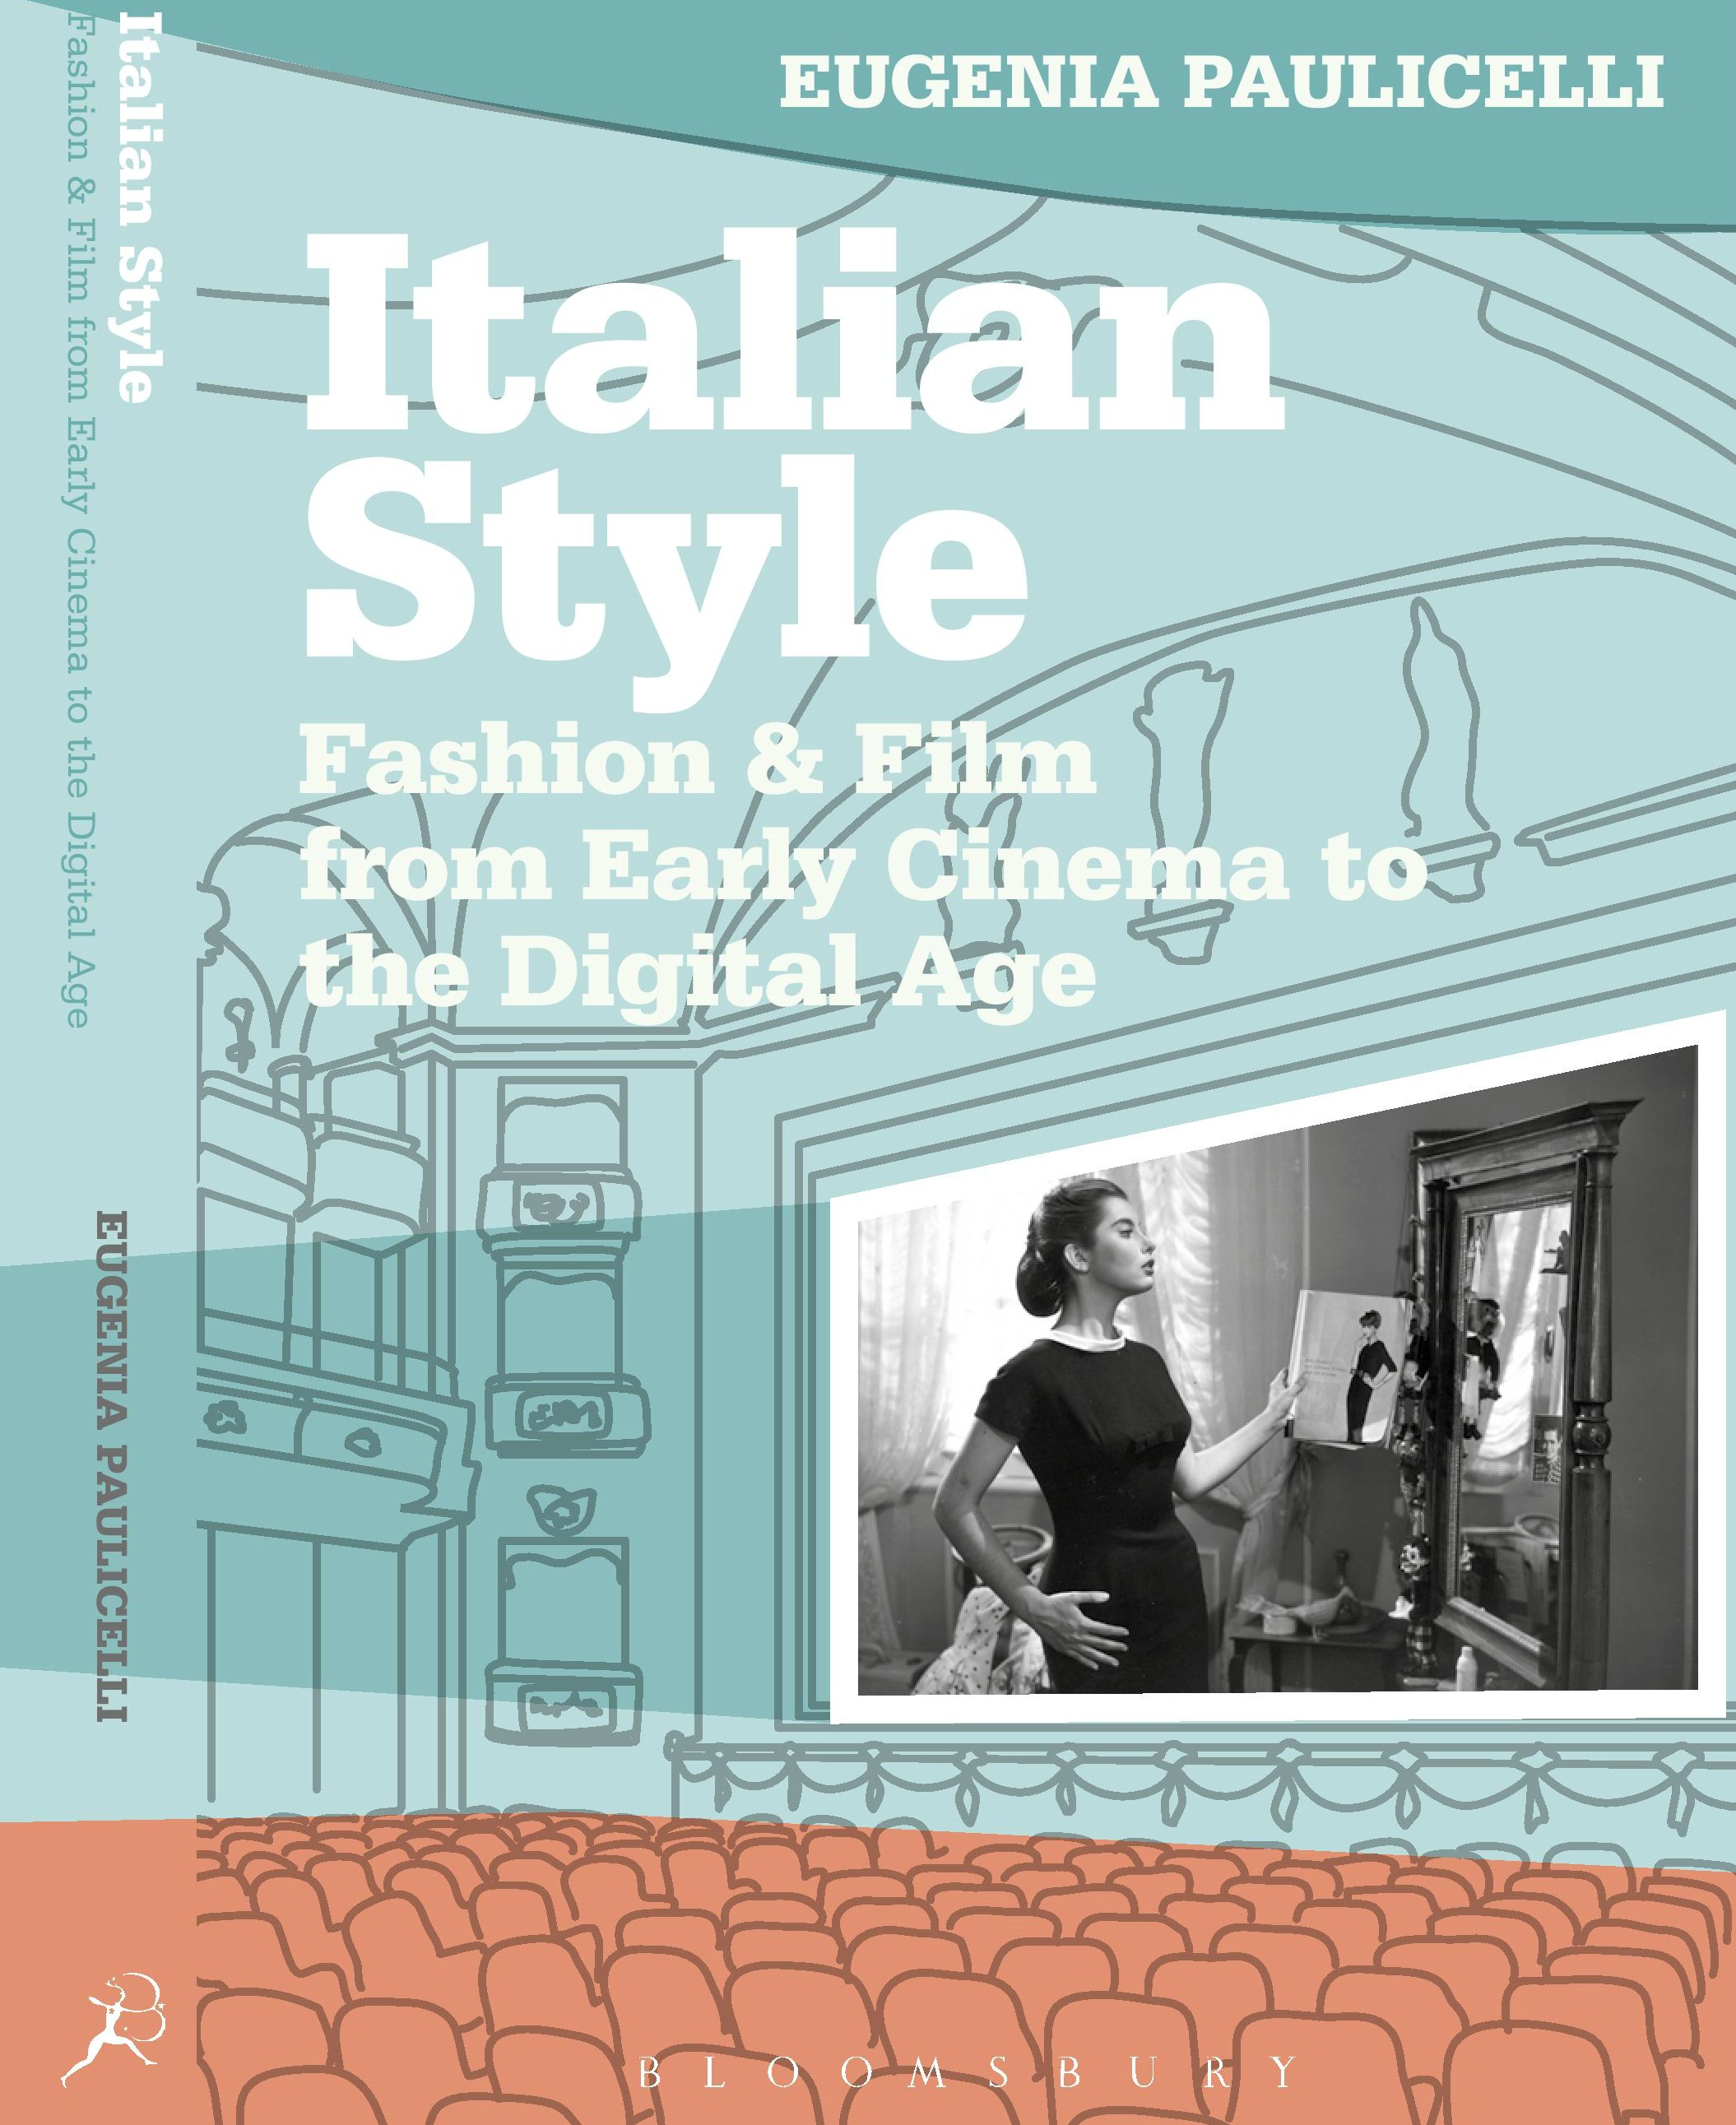 ItalianStyleBookCover-page-001.jpg